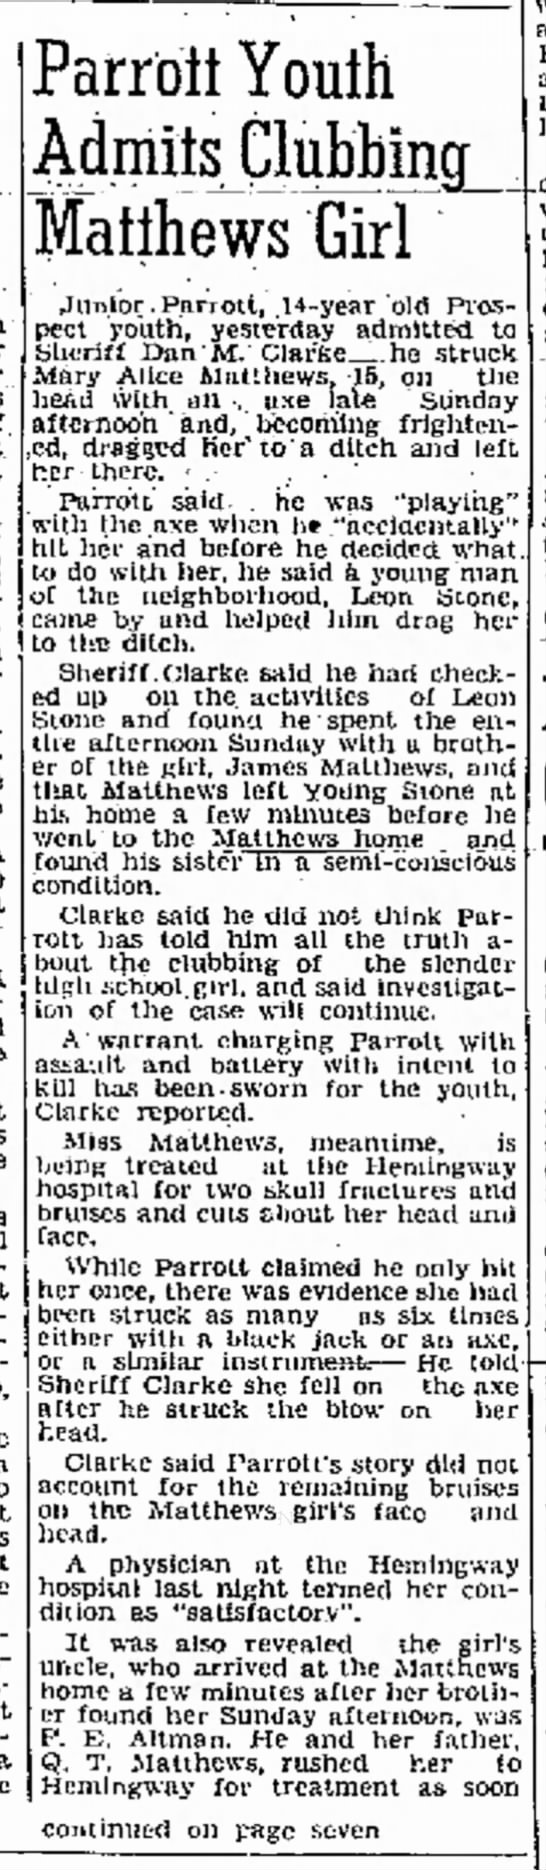 Mary Alice - 20 Jun 1946 Florence Morning News pg 1